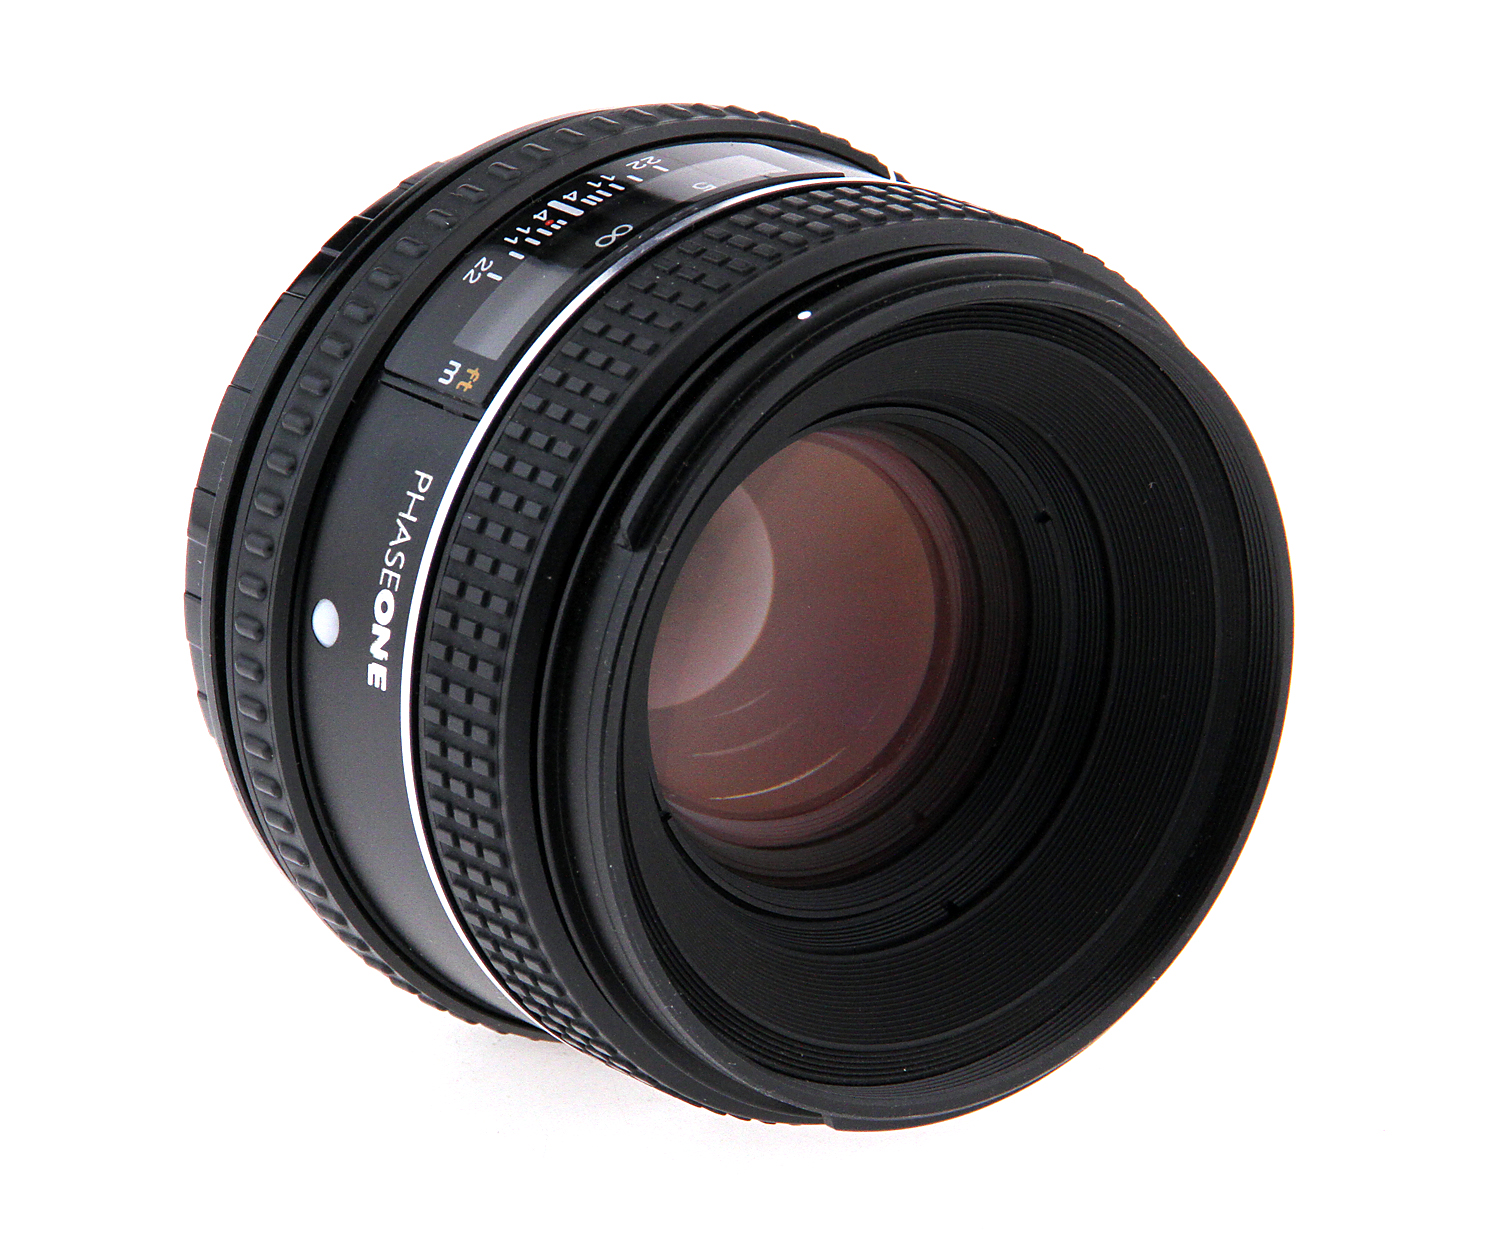 AF 80mm f/2.8 Digital Lens Used